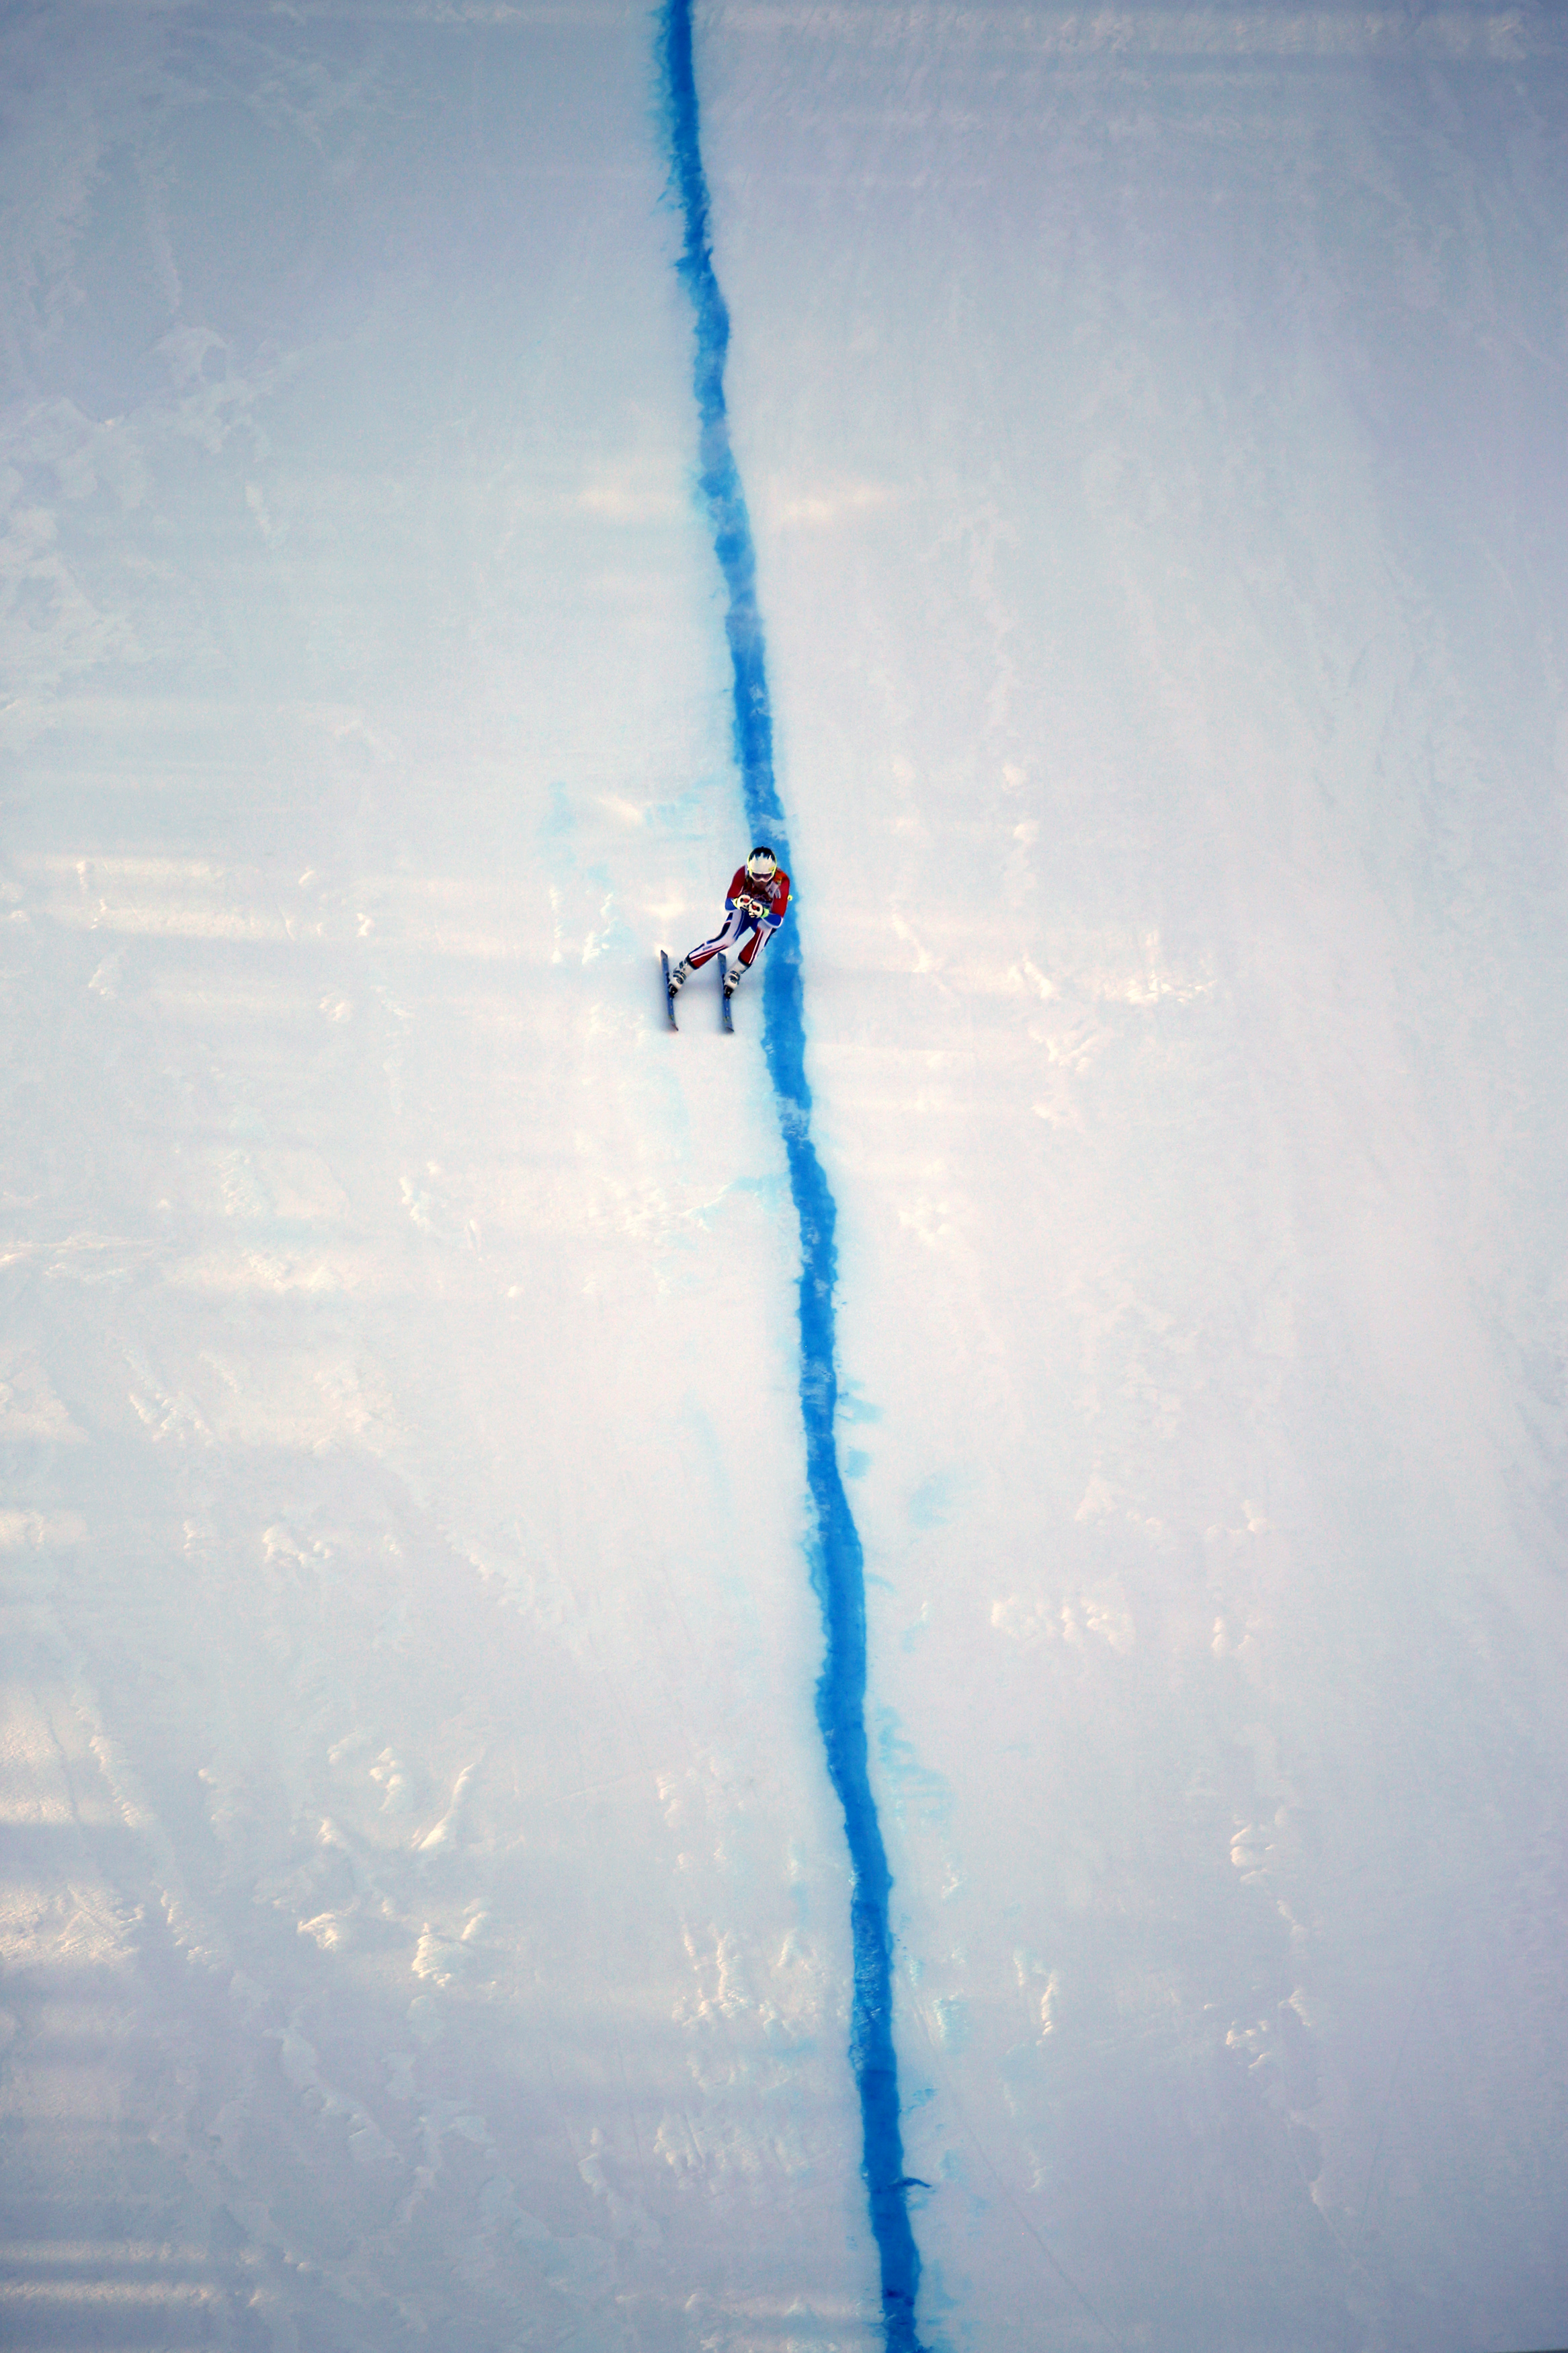 alpine skiing super combined training session at the Sochi 2014 Winter ...